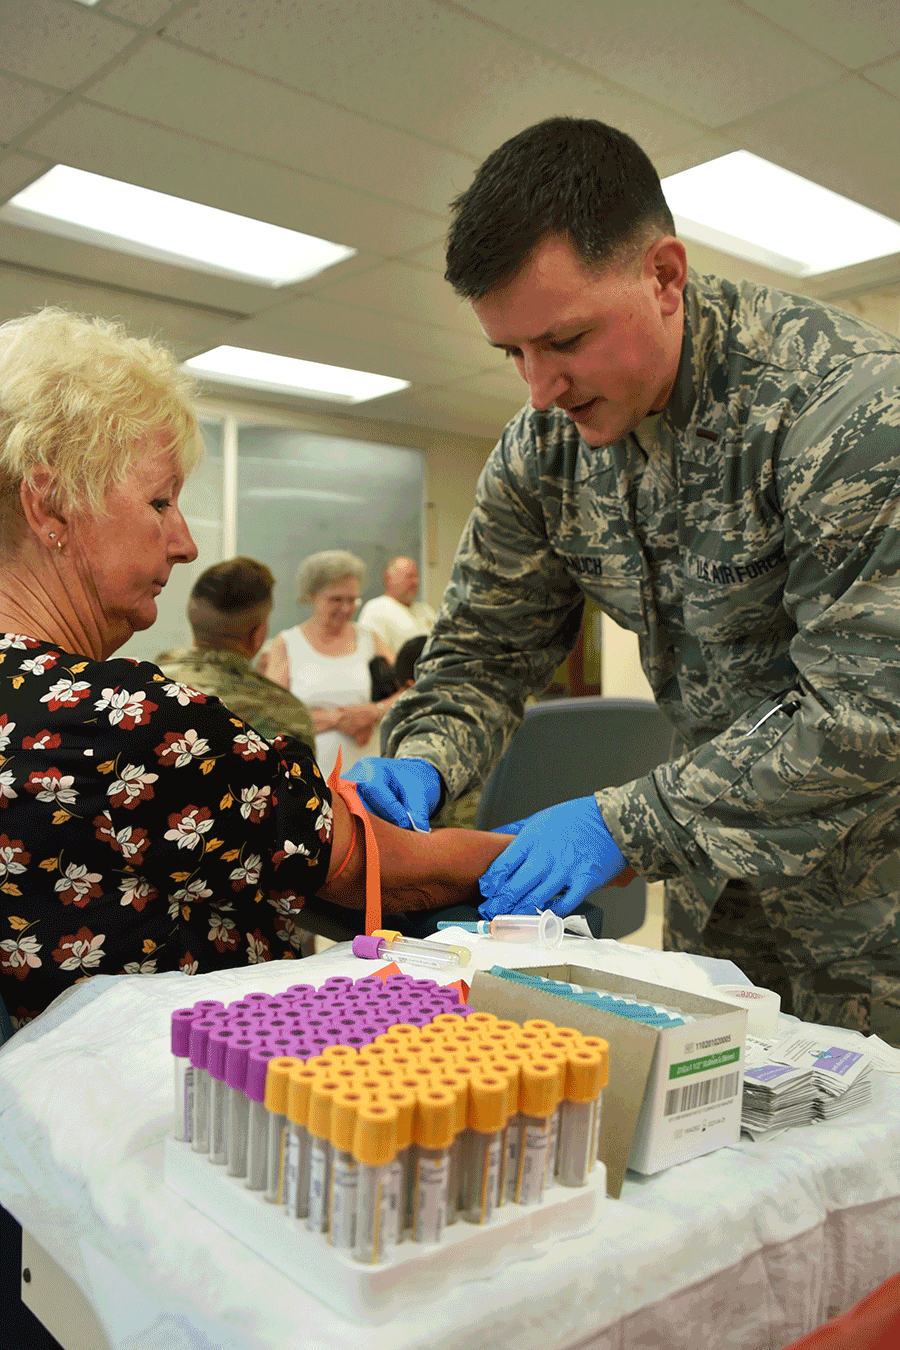 An Airman conducts a blood draw  on woman.